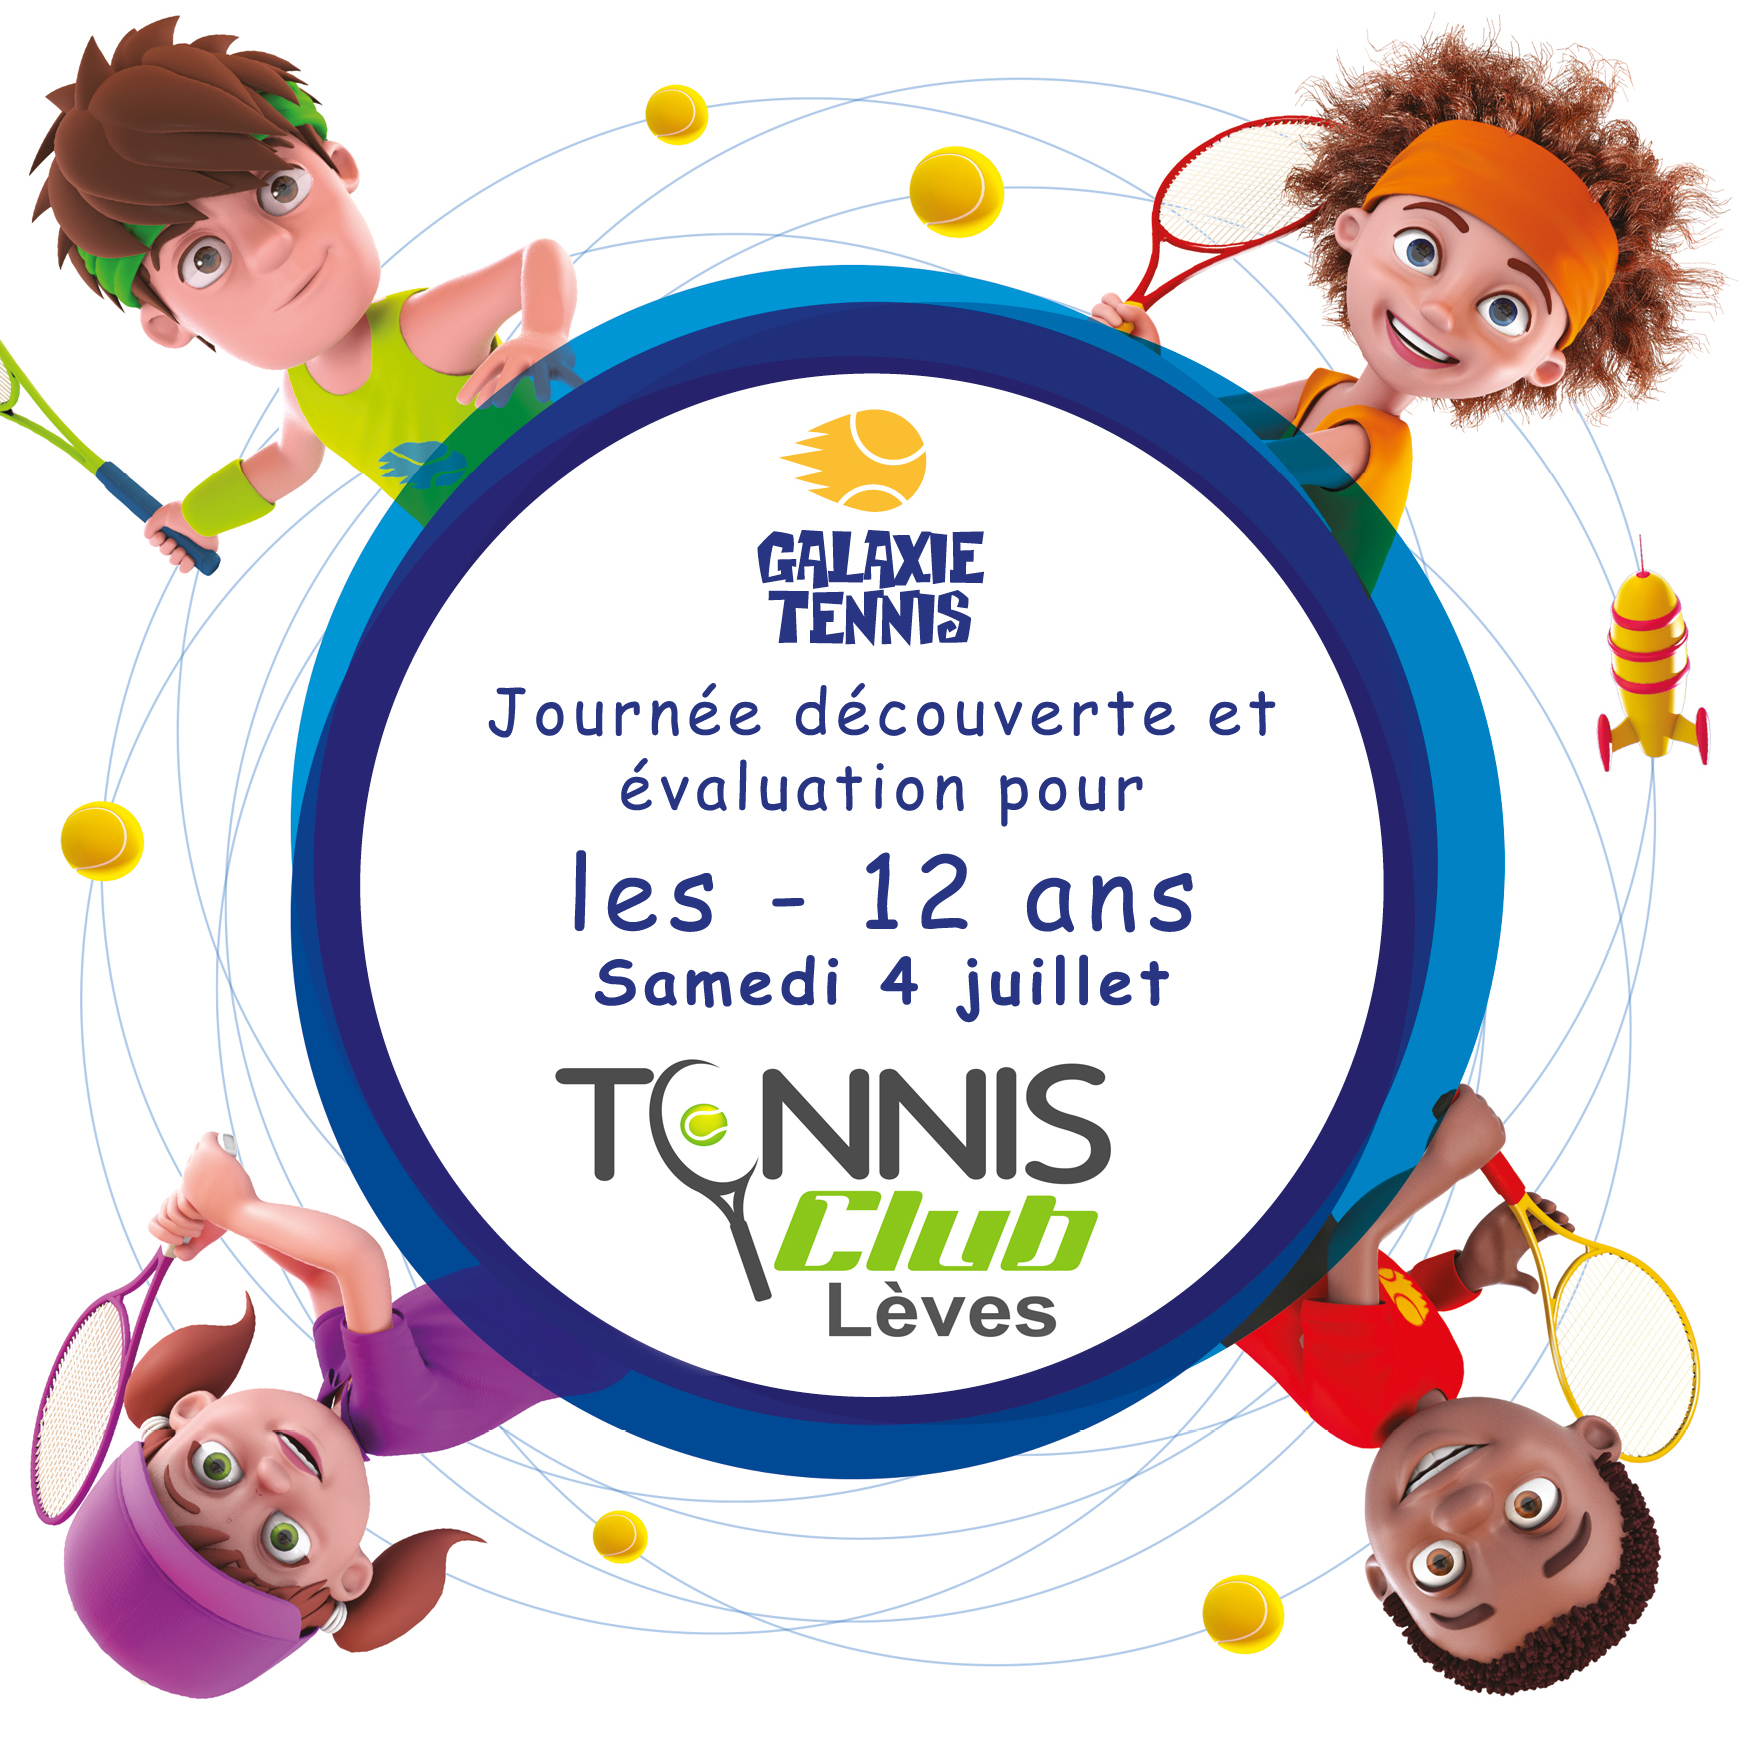 4 juillet Galaxie tennis